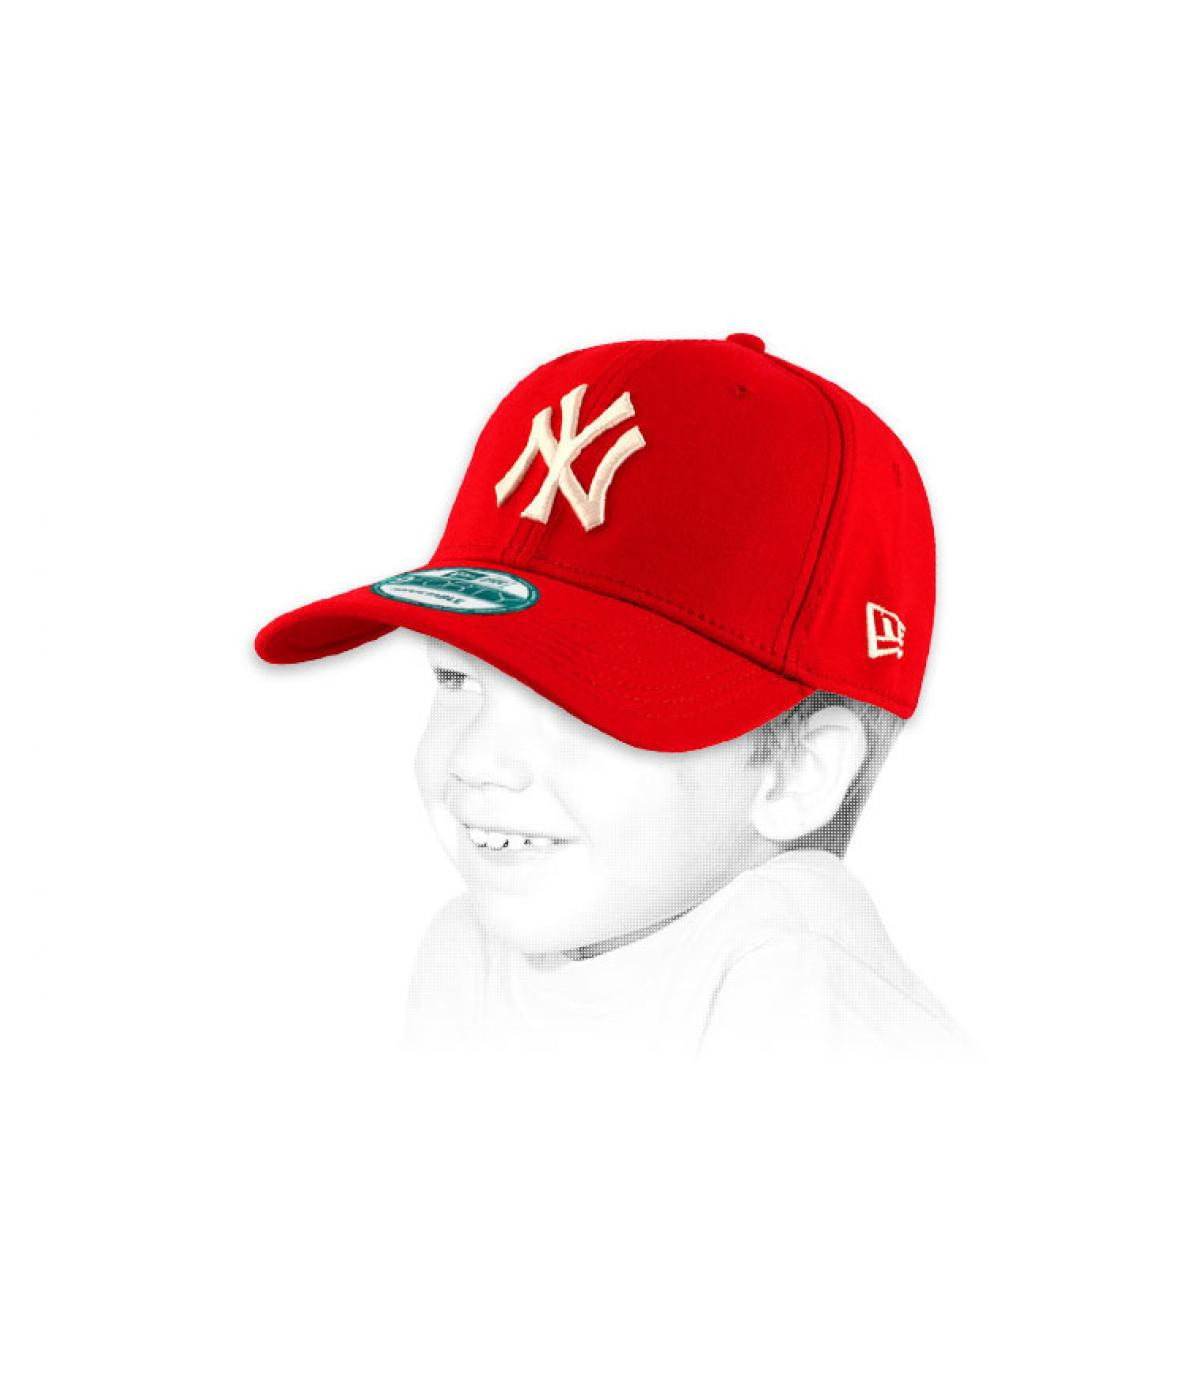 Details Child 9Forty NY red - Abbildung 2